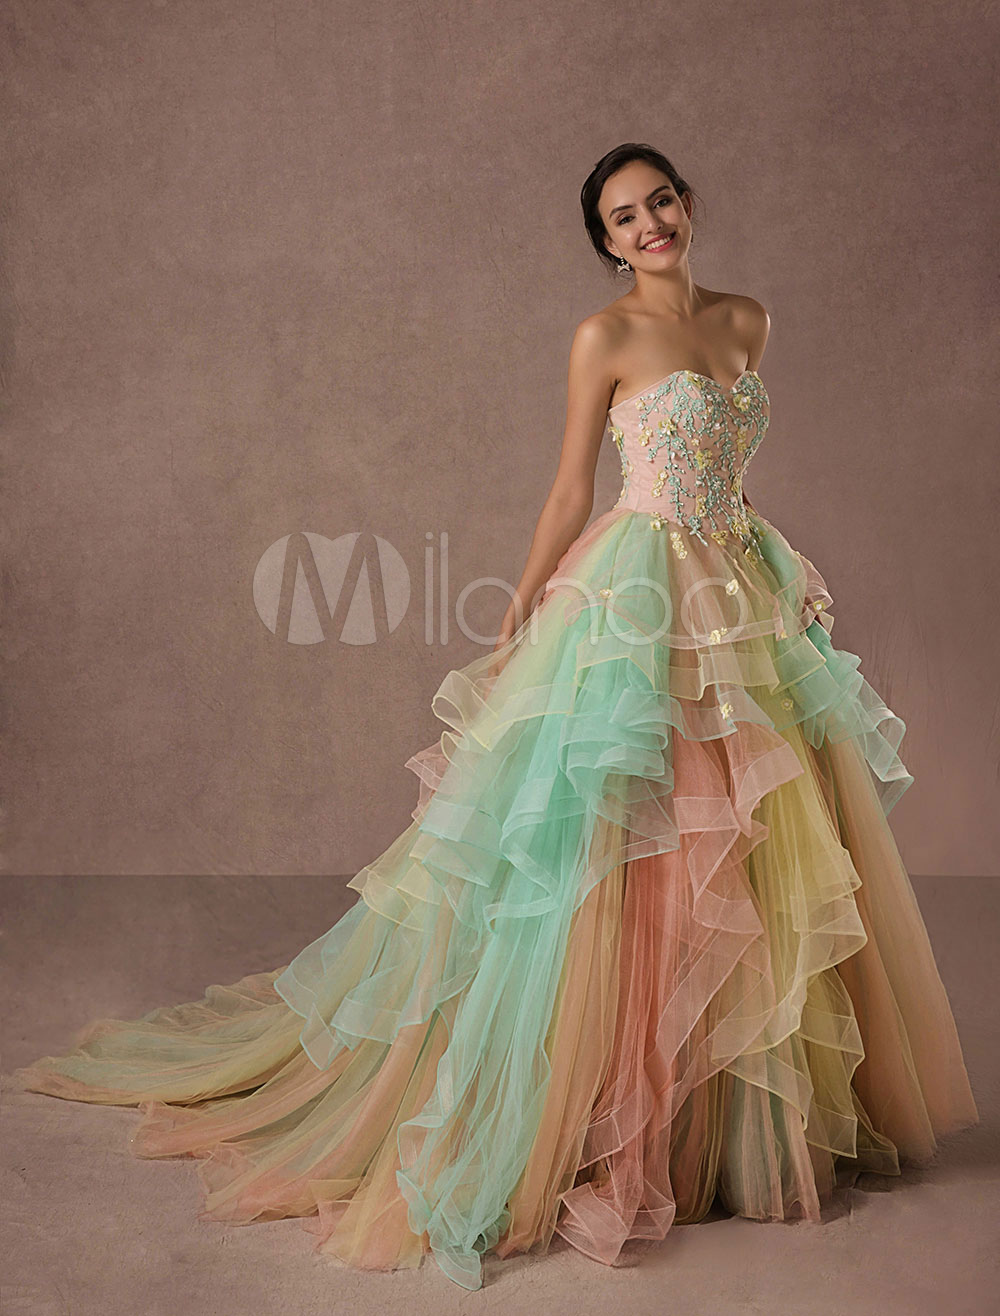 Rainbow Quinceanera Dress Tulle Lace Pageant Dress Applique Beading A-line Luxury Princess Dress With Chapel Train